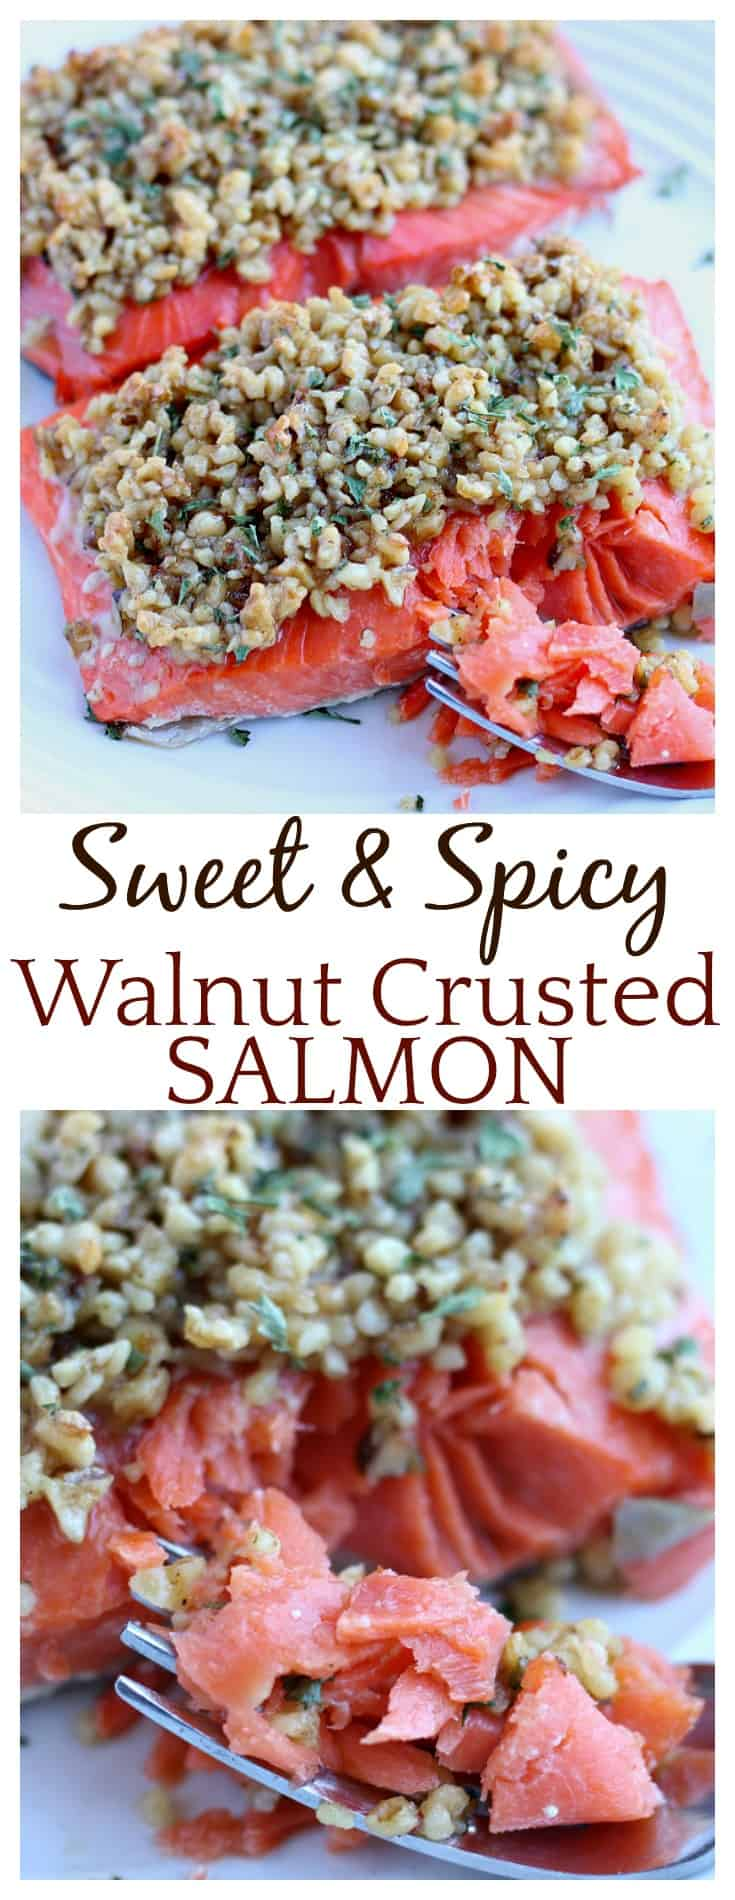 Another quick and easy dinner recipe! This Sweet & Spicy Walnut Crusted Salmon is an absolutely delicious recipe, especially when made with wild-caught Alaska salmon!